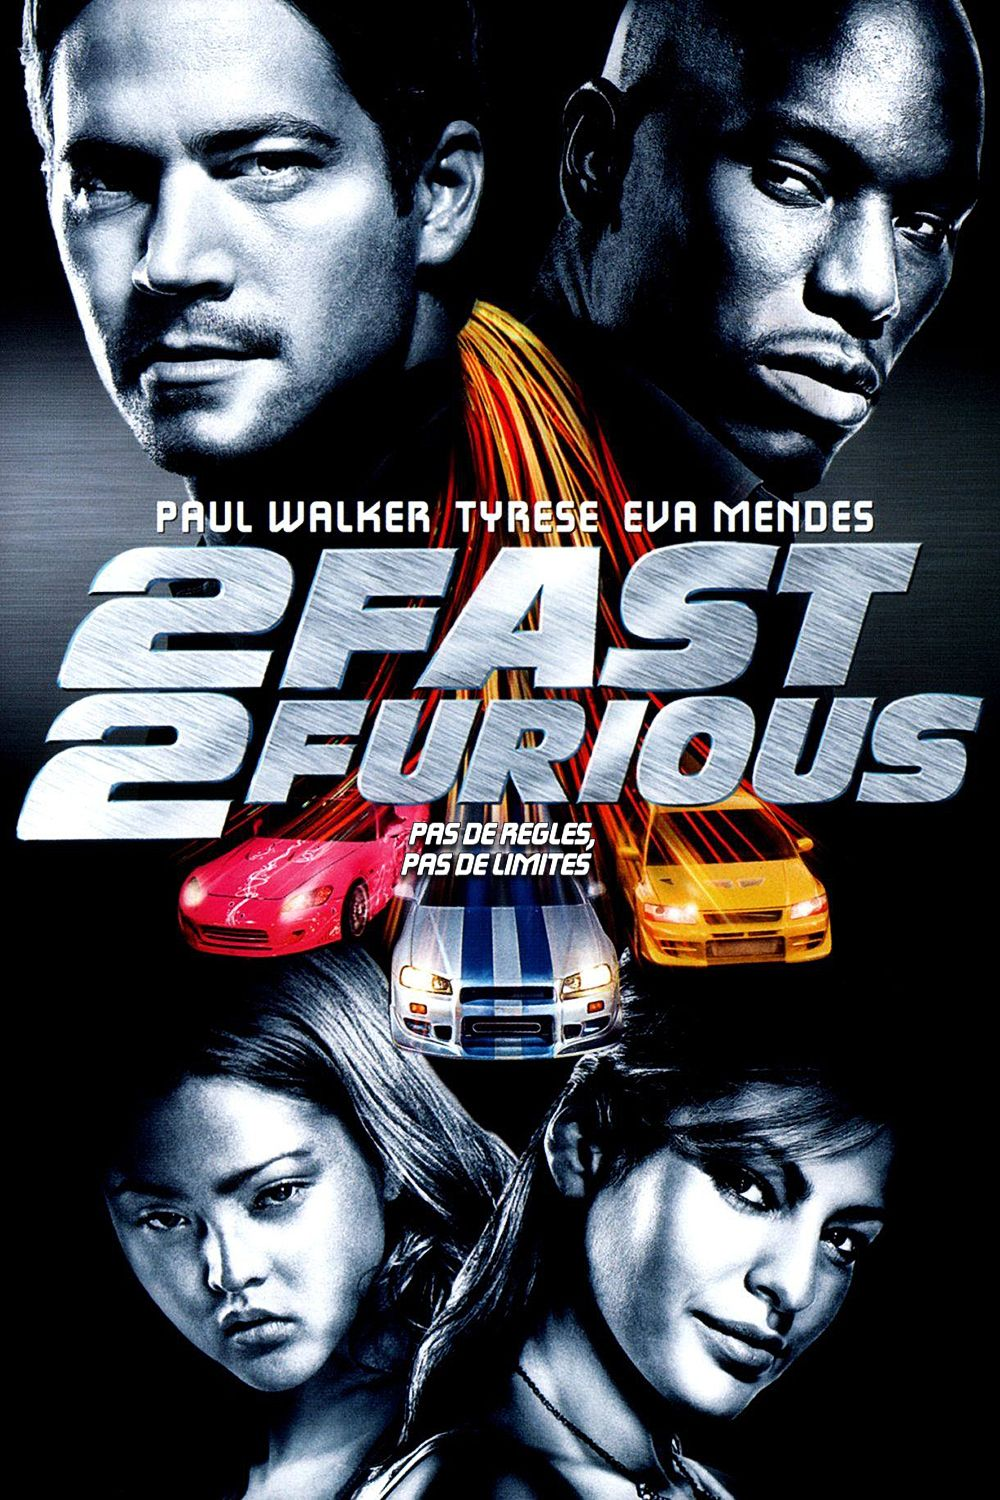 Fast Furious 2 2 Fast 2 Furious Film Complet En Streaming Vf Film Complet Streaming Vf Film Streaming Vk R Fast And Furious Furious Movie Paul Walker